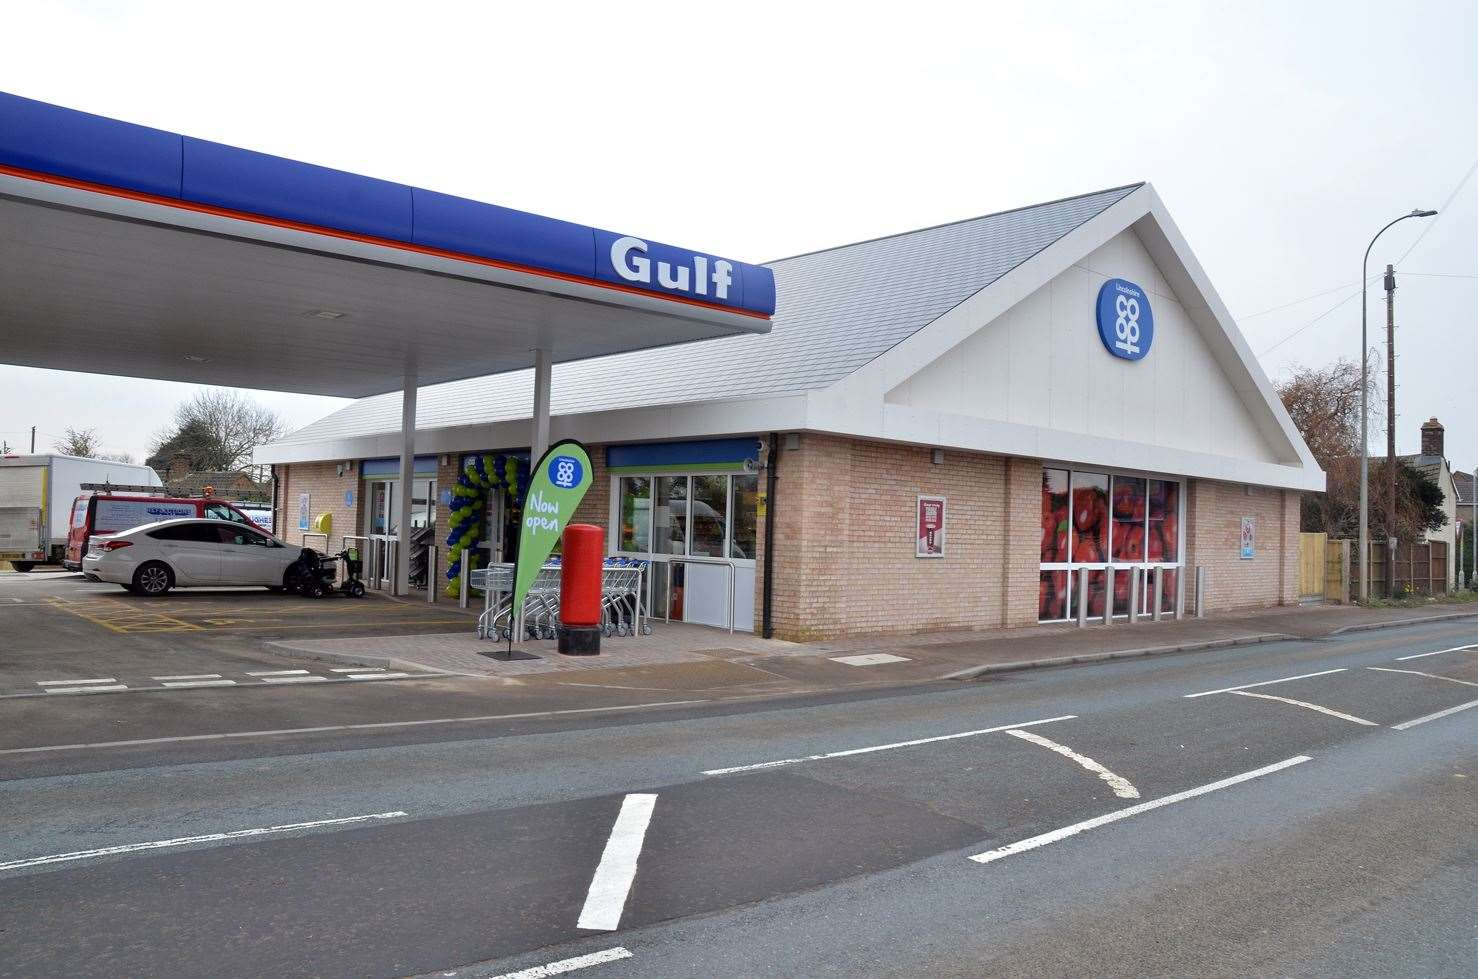 The new Co-op store, which opened in Whaplode on Thursday.